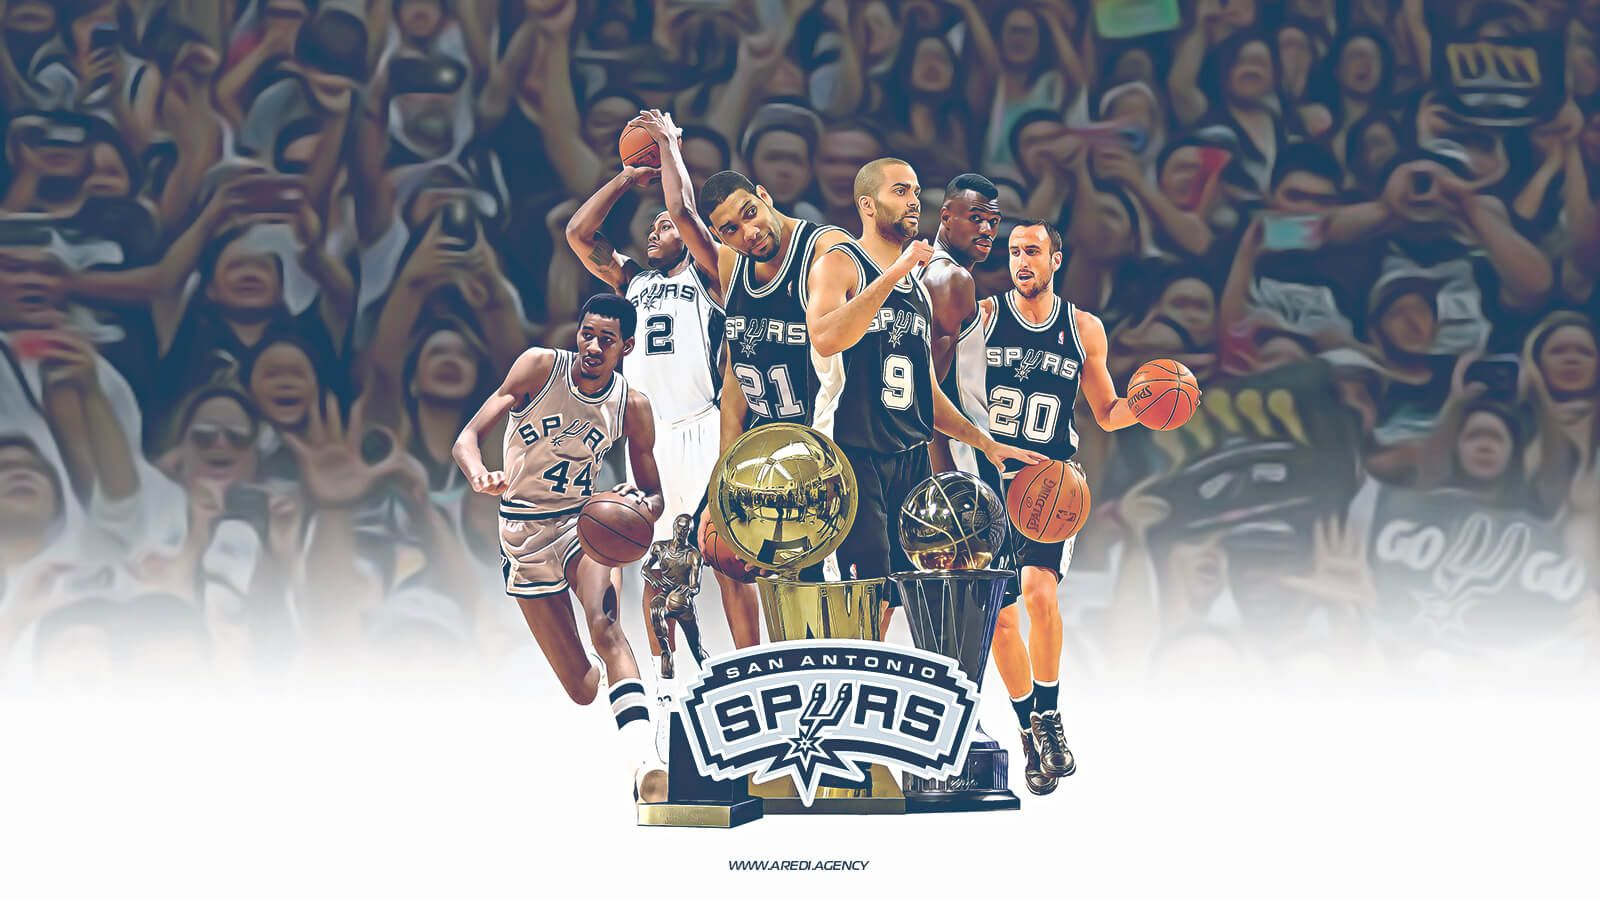 San Antonio Spurs, wallpaper, art, sport, create, design, basketball, champion, club, branding, NBA, MVP legends, histoty, All Star game, Tim Duncan, ...